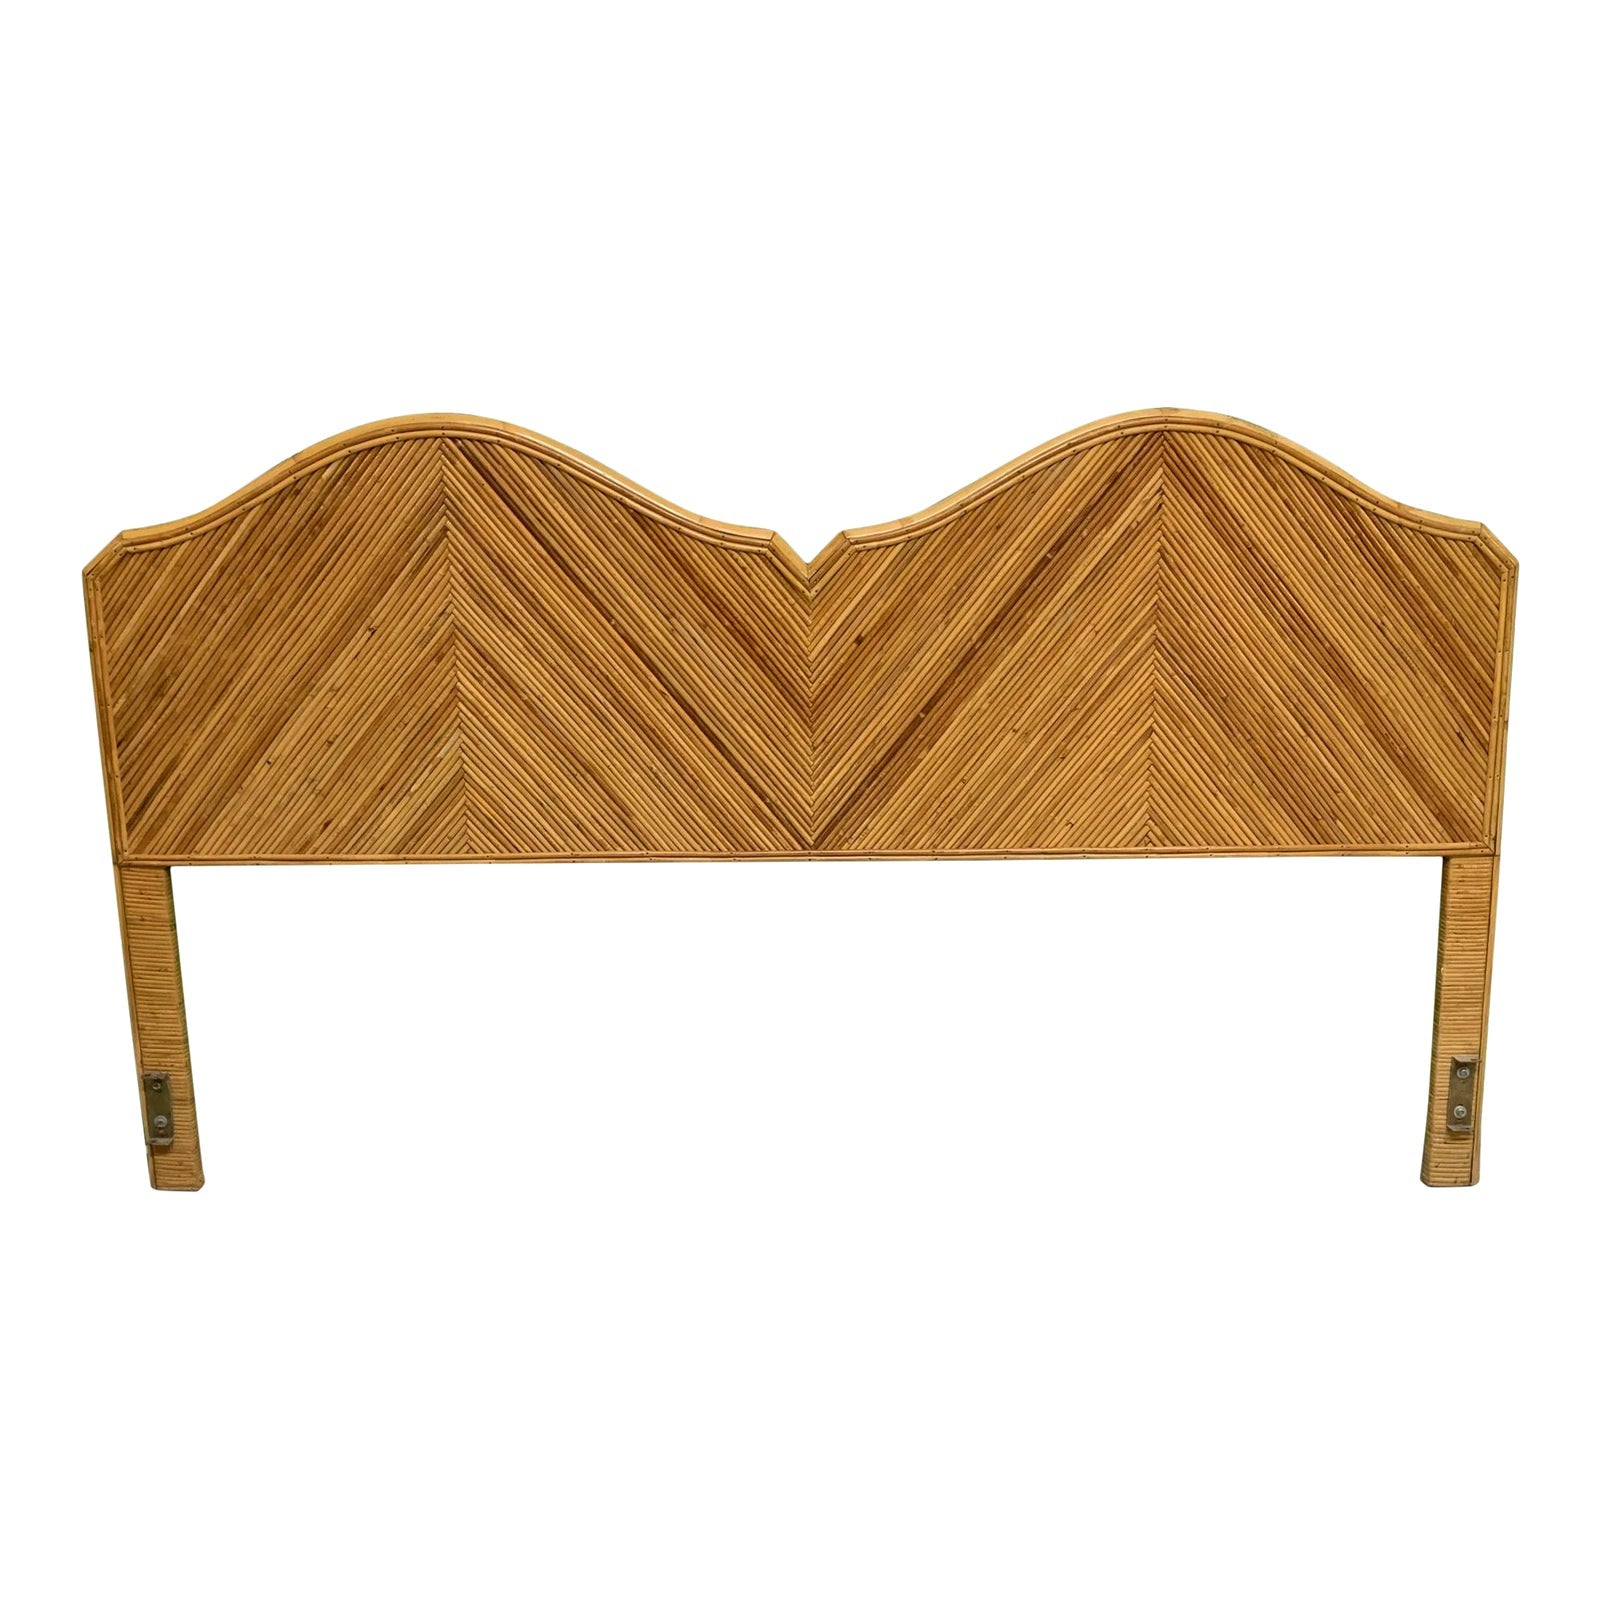 King Size Split Reed Rattan Headboard in the Style of Gabriella Crespi